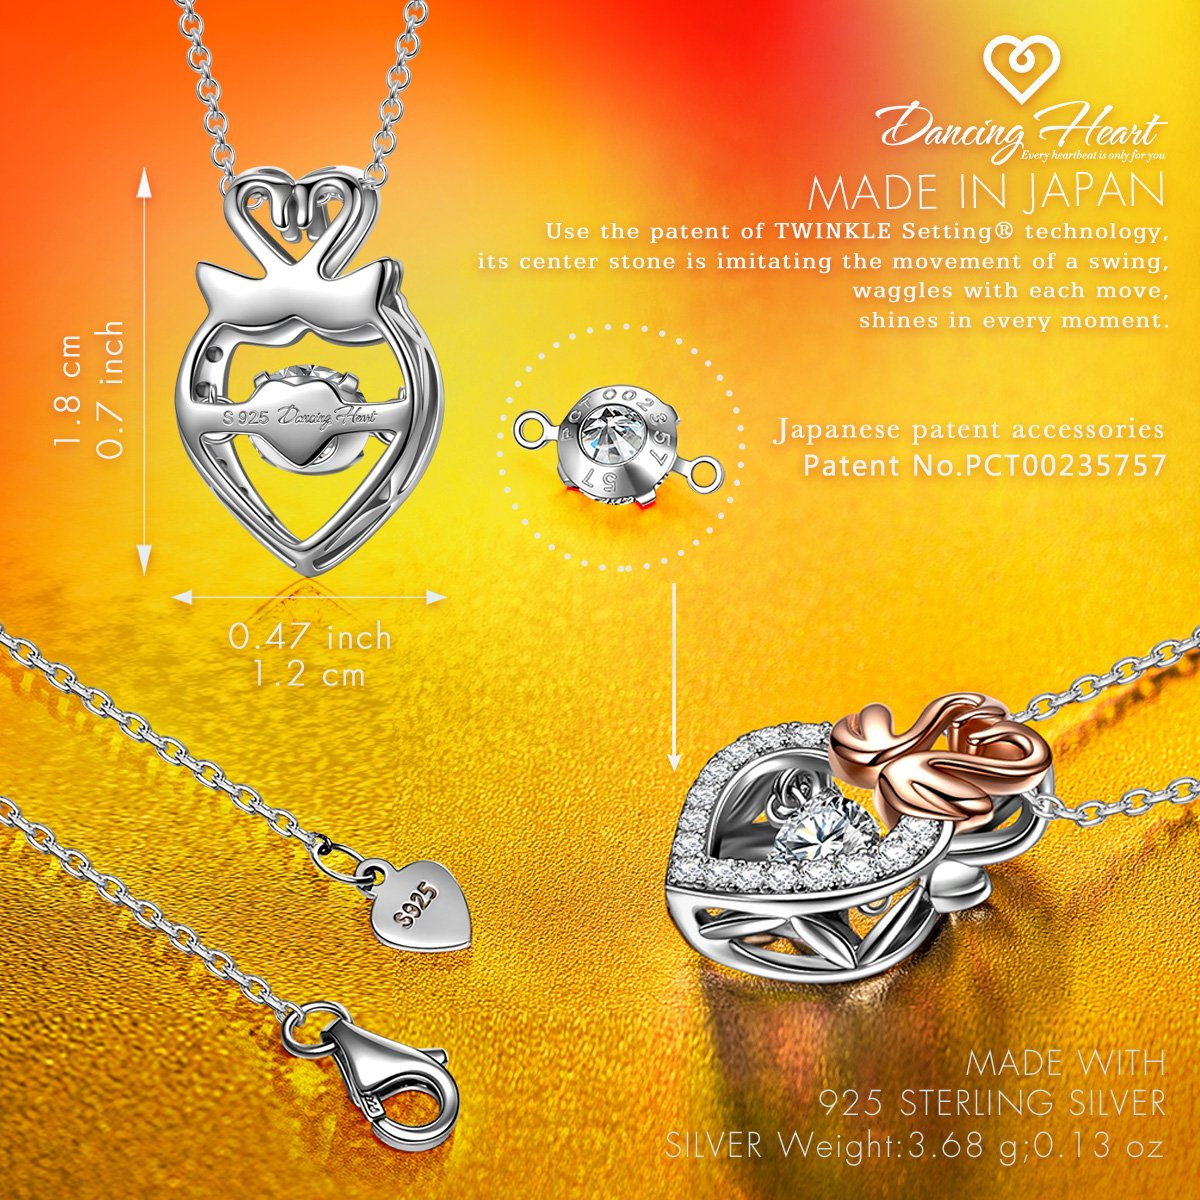 DANCING HEART Dancing Stone Jewelry Set 925 Sterling Silver Rose Gold Swan Women Necklace CZ Pendant Necklace for Women Allergy Free with Gift Package – The Diamond Keeps Moving As If It is Dancing